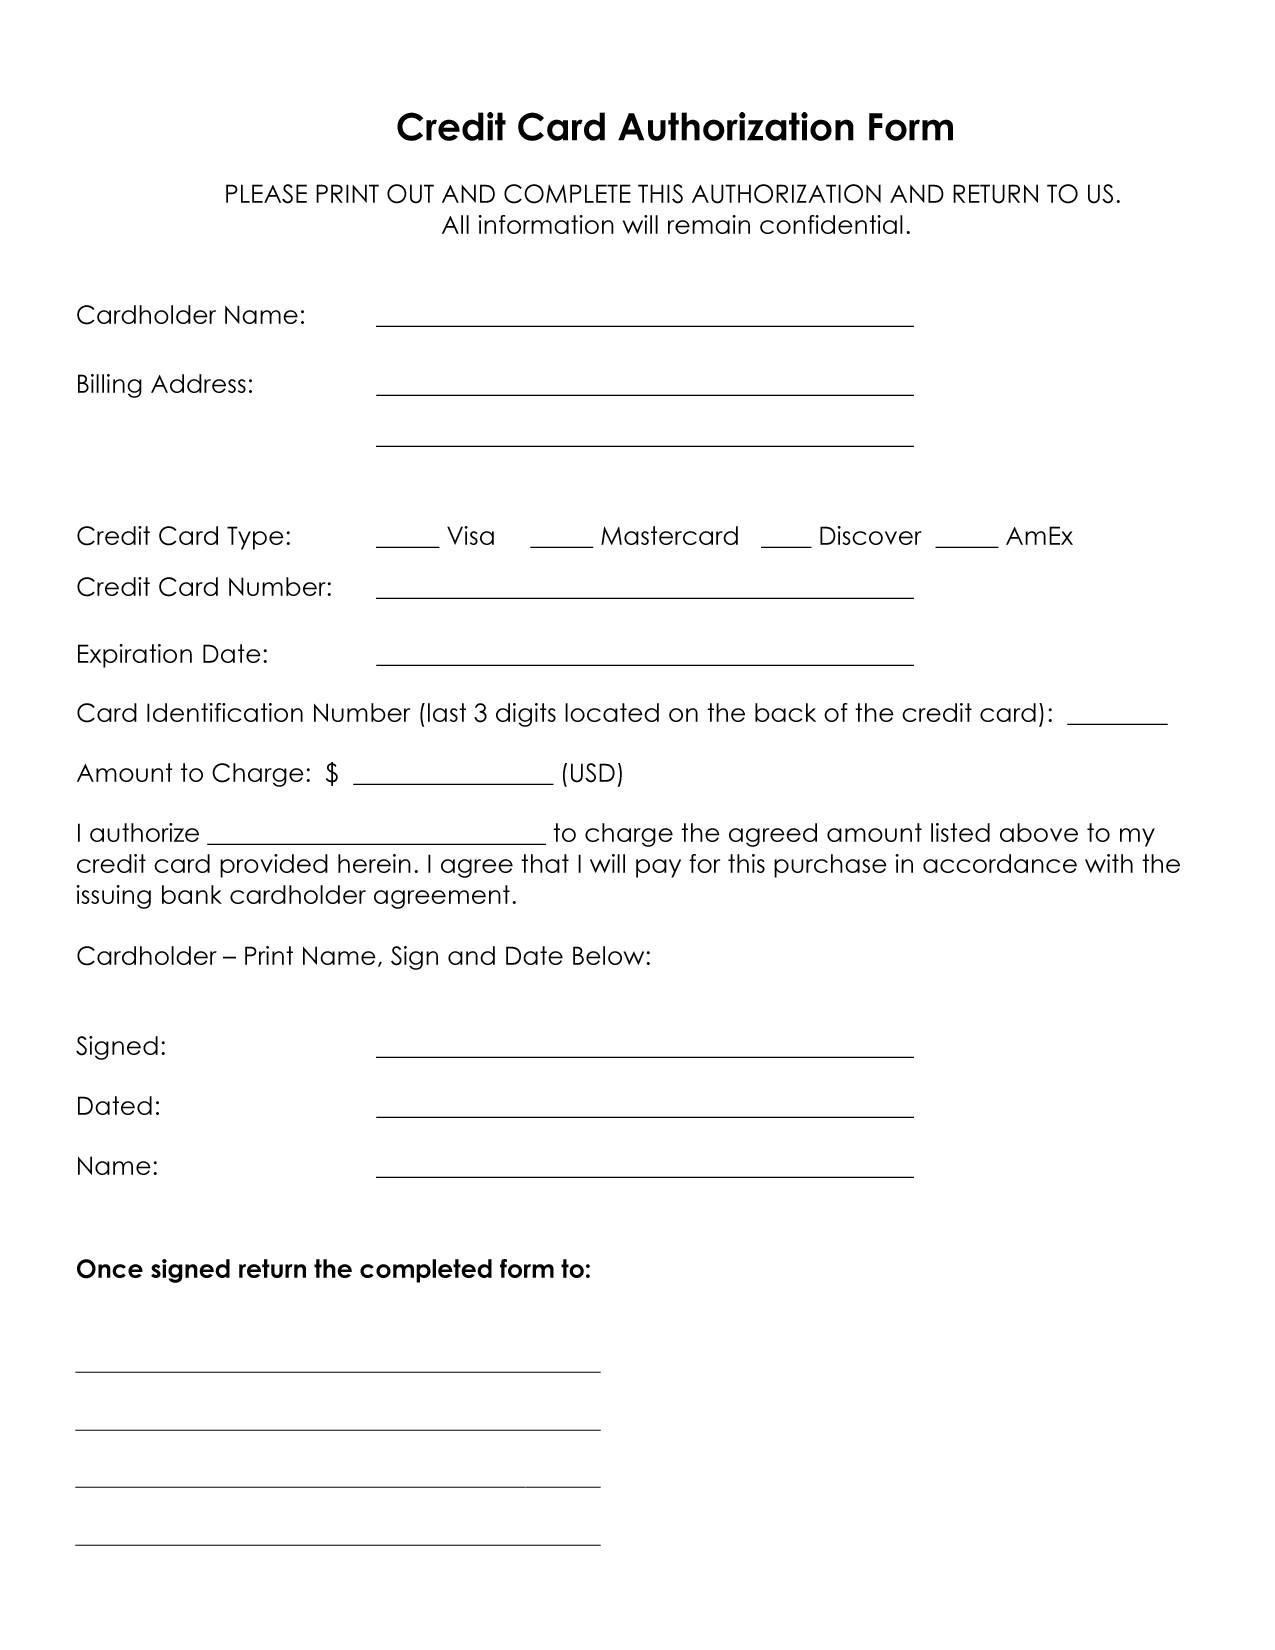 credit card authorization form pdf Credit card authorization forms from Service Related. Generic ...